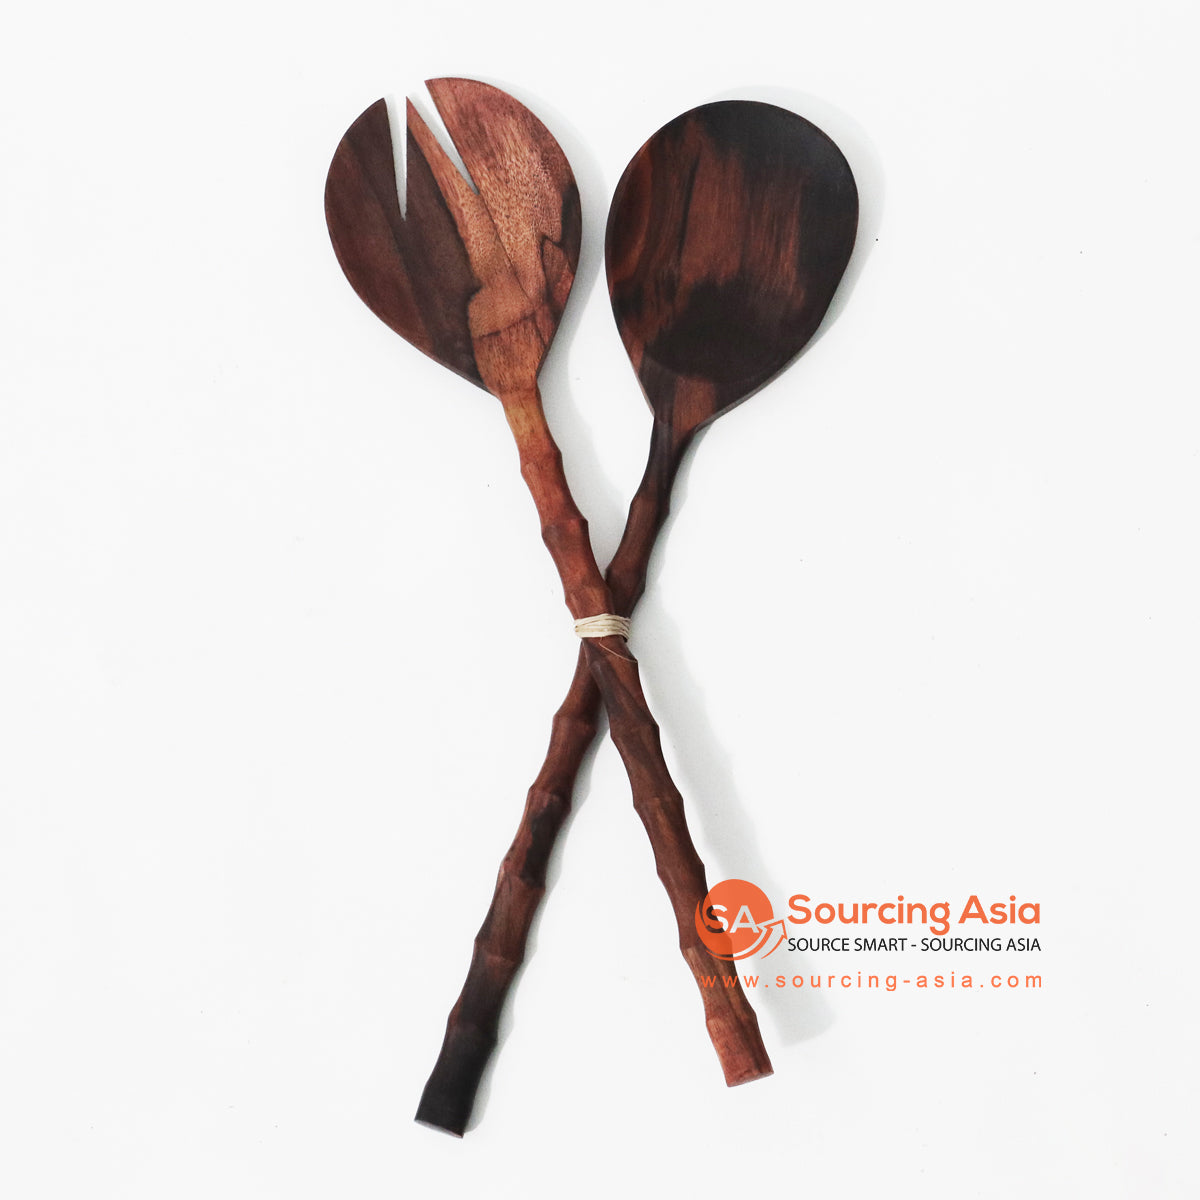 MSB009 TEAK WOOD SALAD SERVER SET